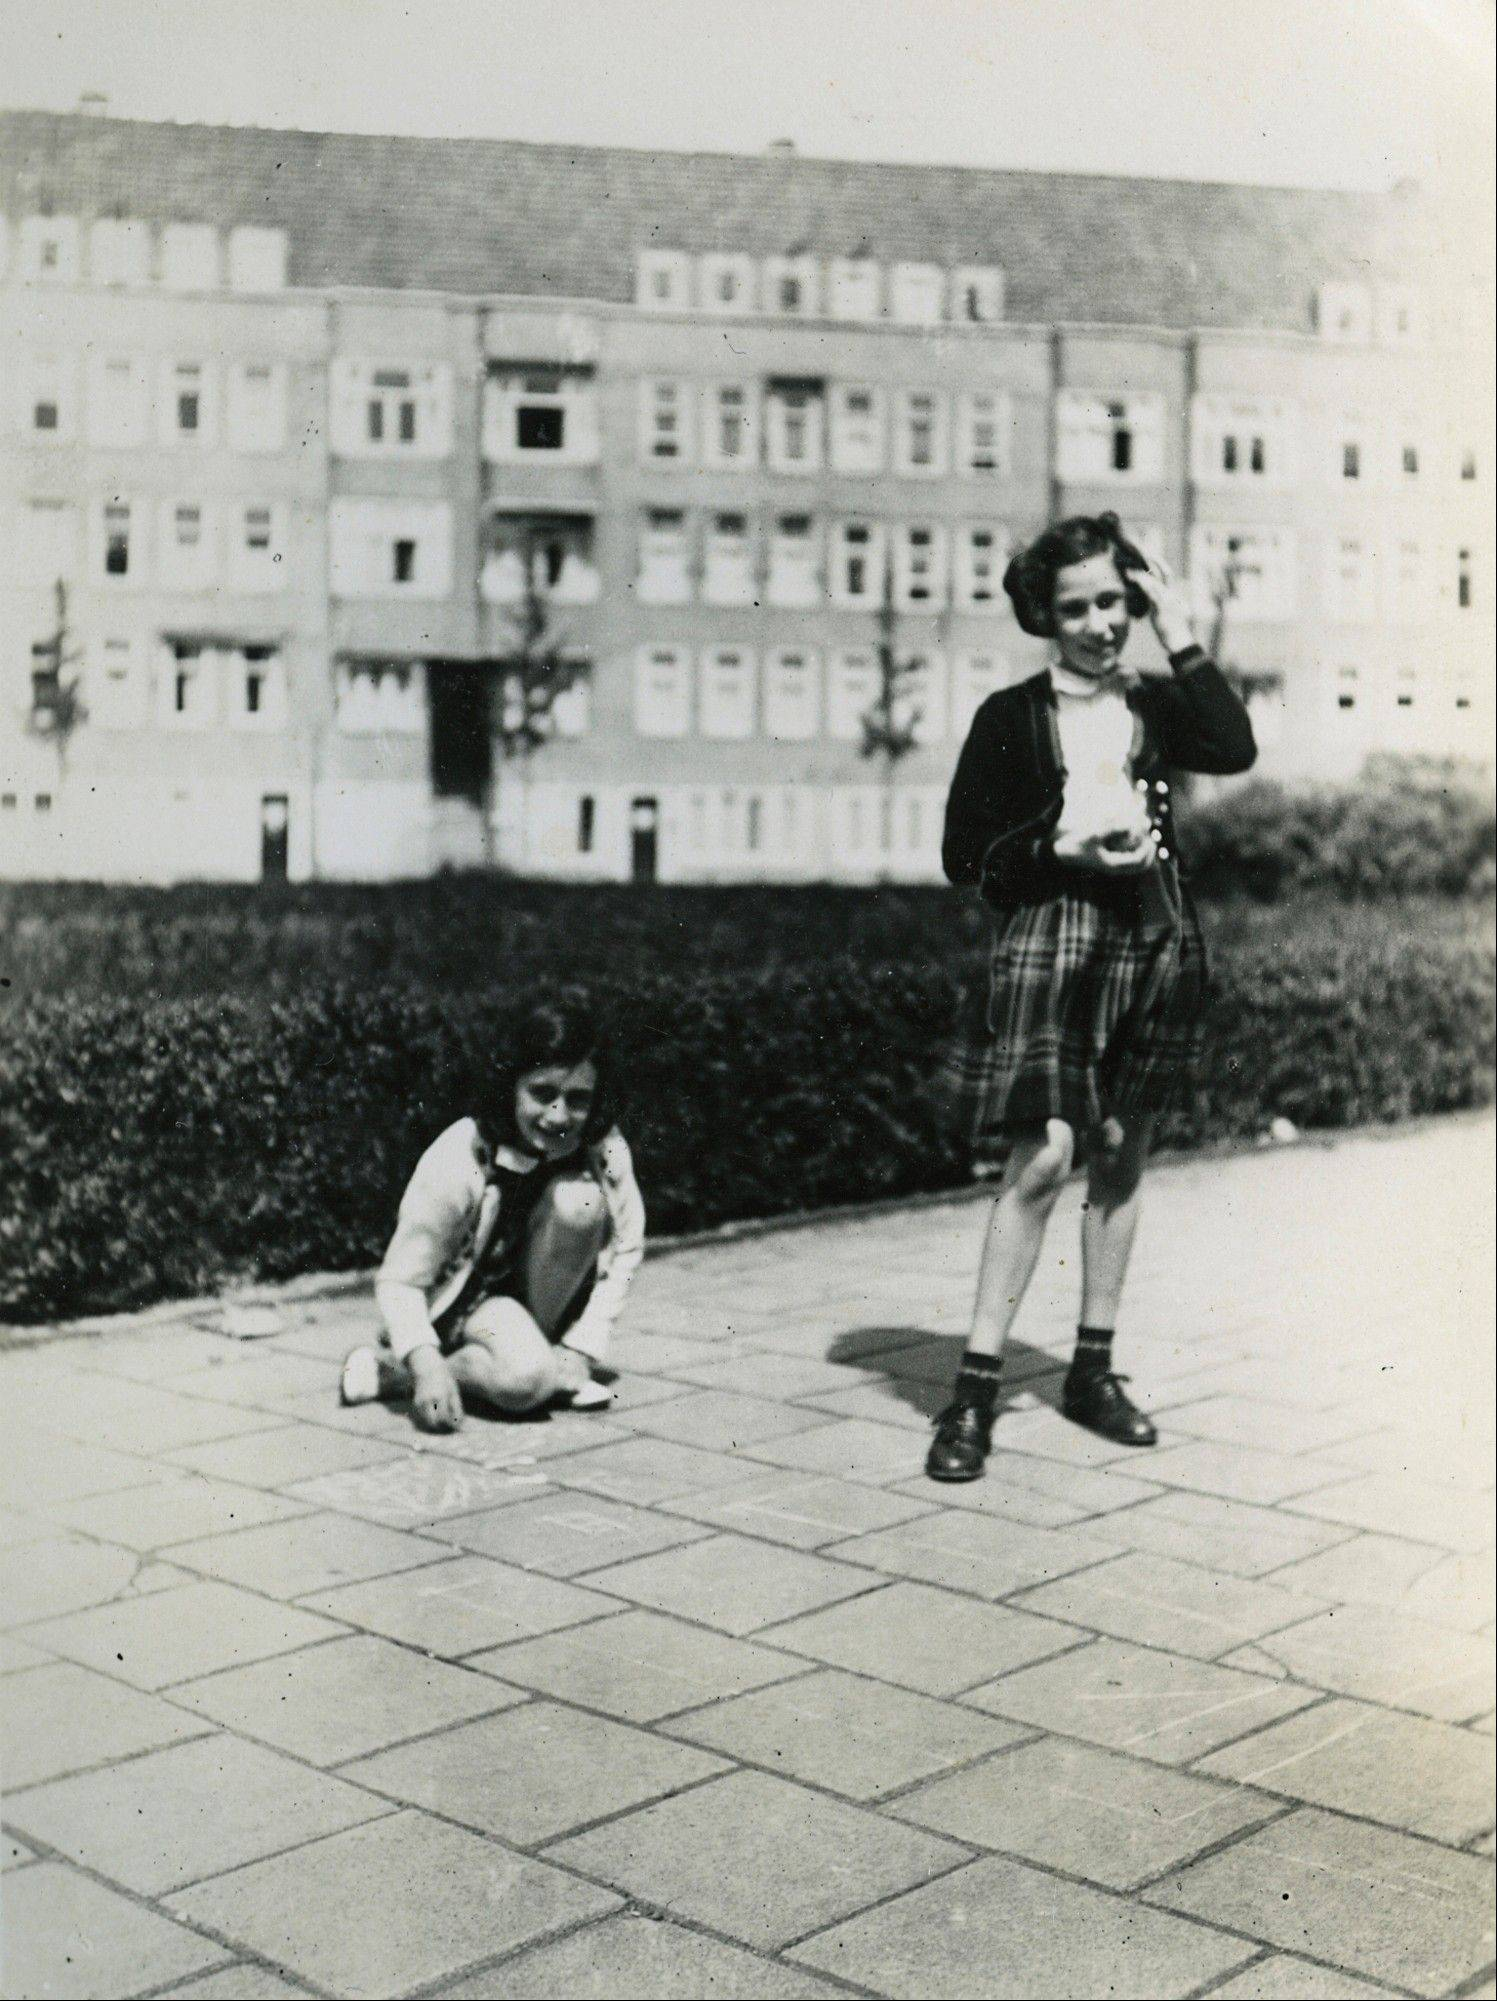 Anne Frank, left, plays with her friend Hanneli Goslar, right, on the Merwedeplein square in Amsterdam. Shortly before Anne Frank and her family went into hiding from the Nazis, she gave away some of her toys to non-Jewish neighborhood girlfriend Toosje Kupers for safekeeping.